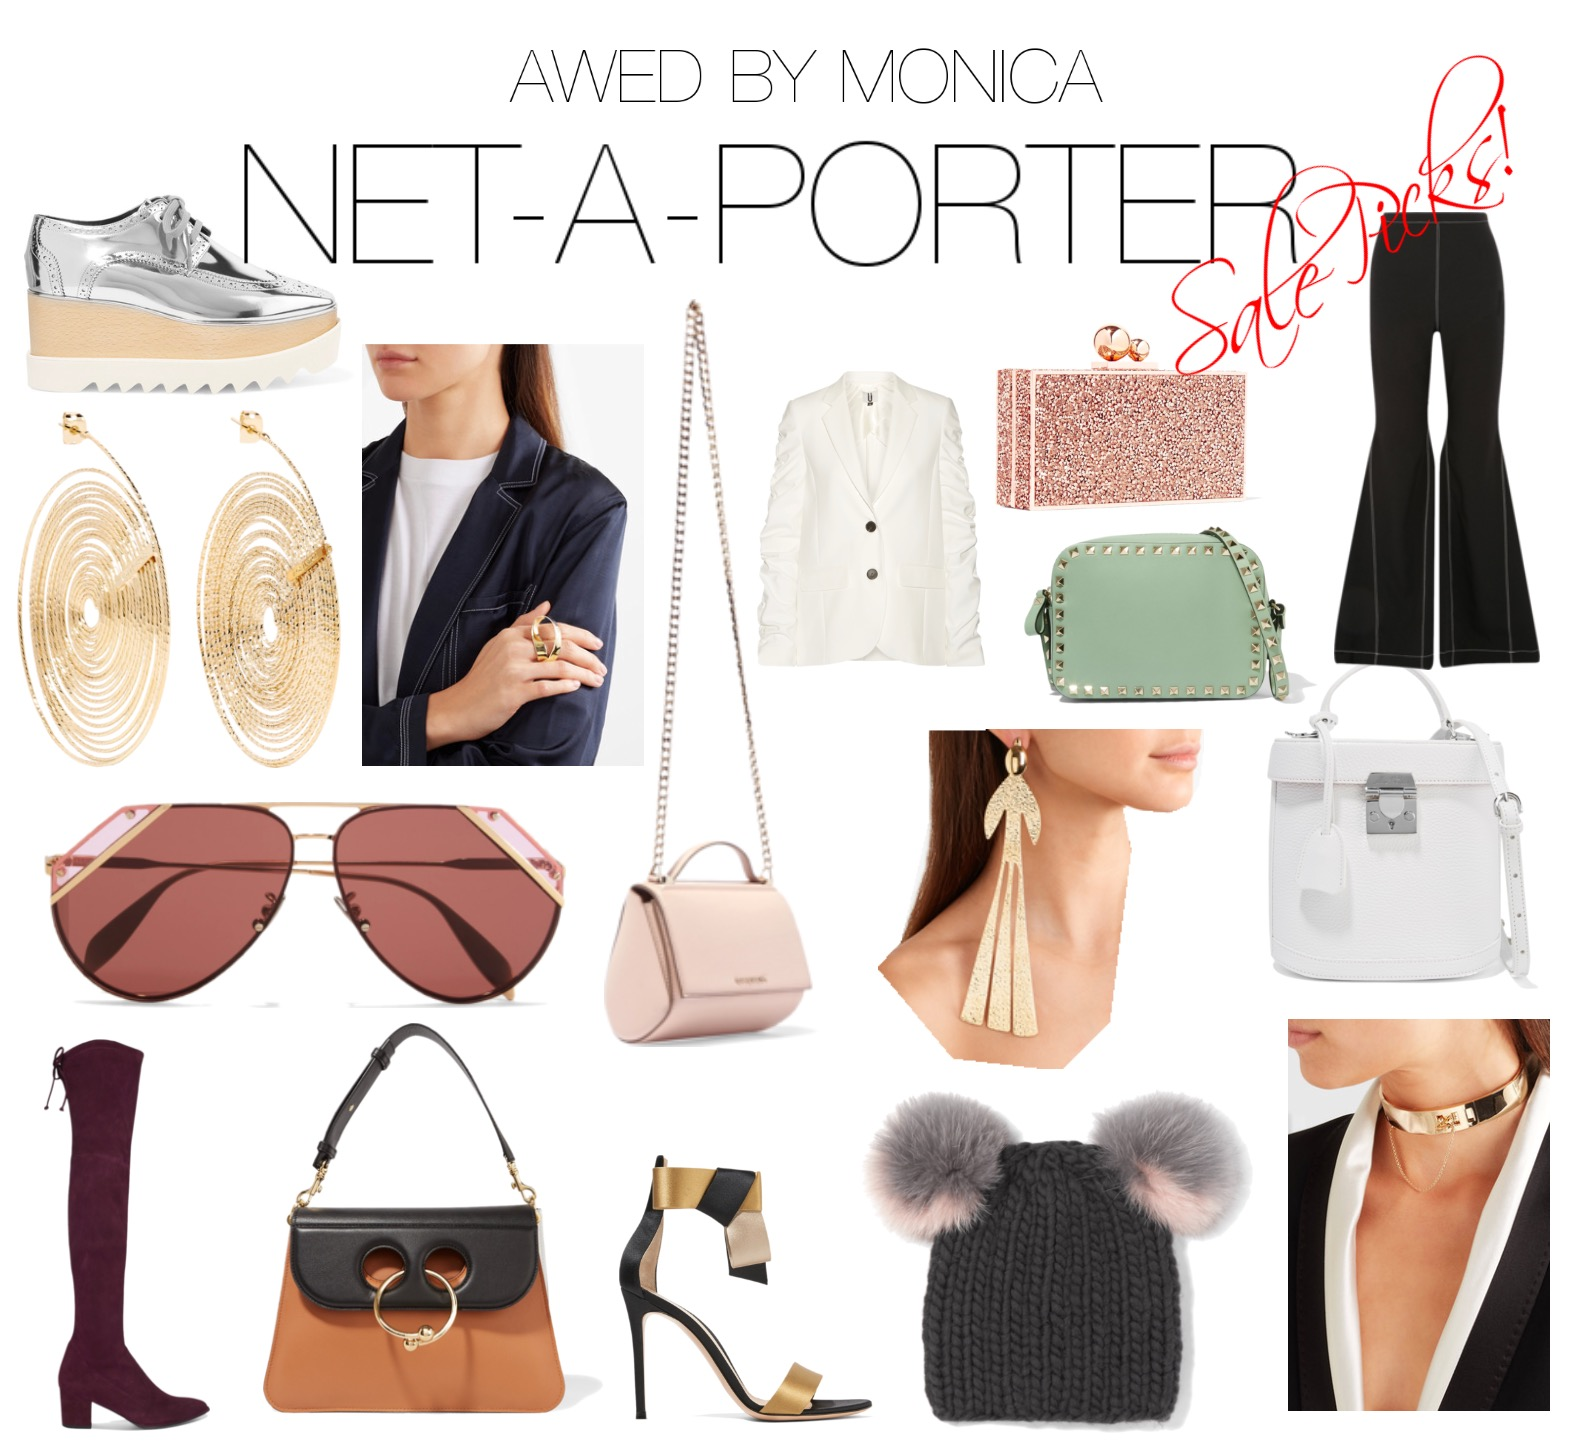 net-a-porter sale must haves